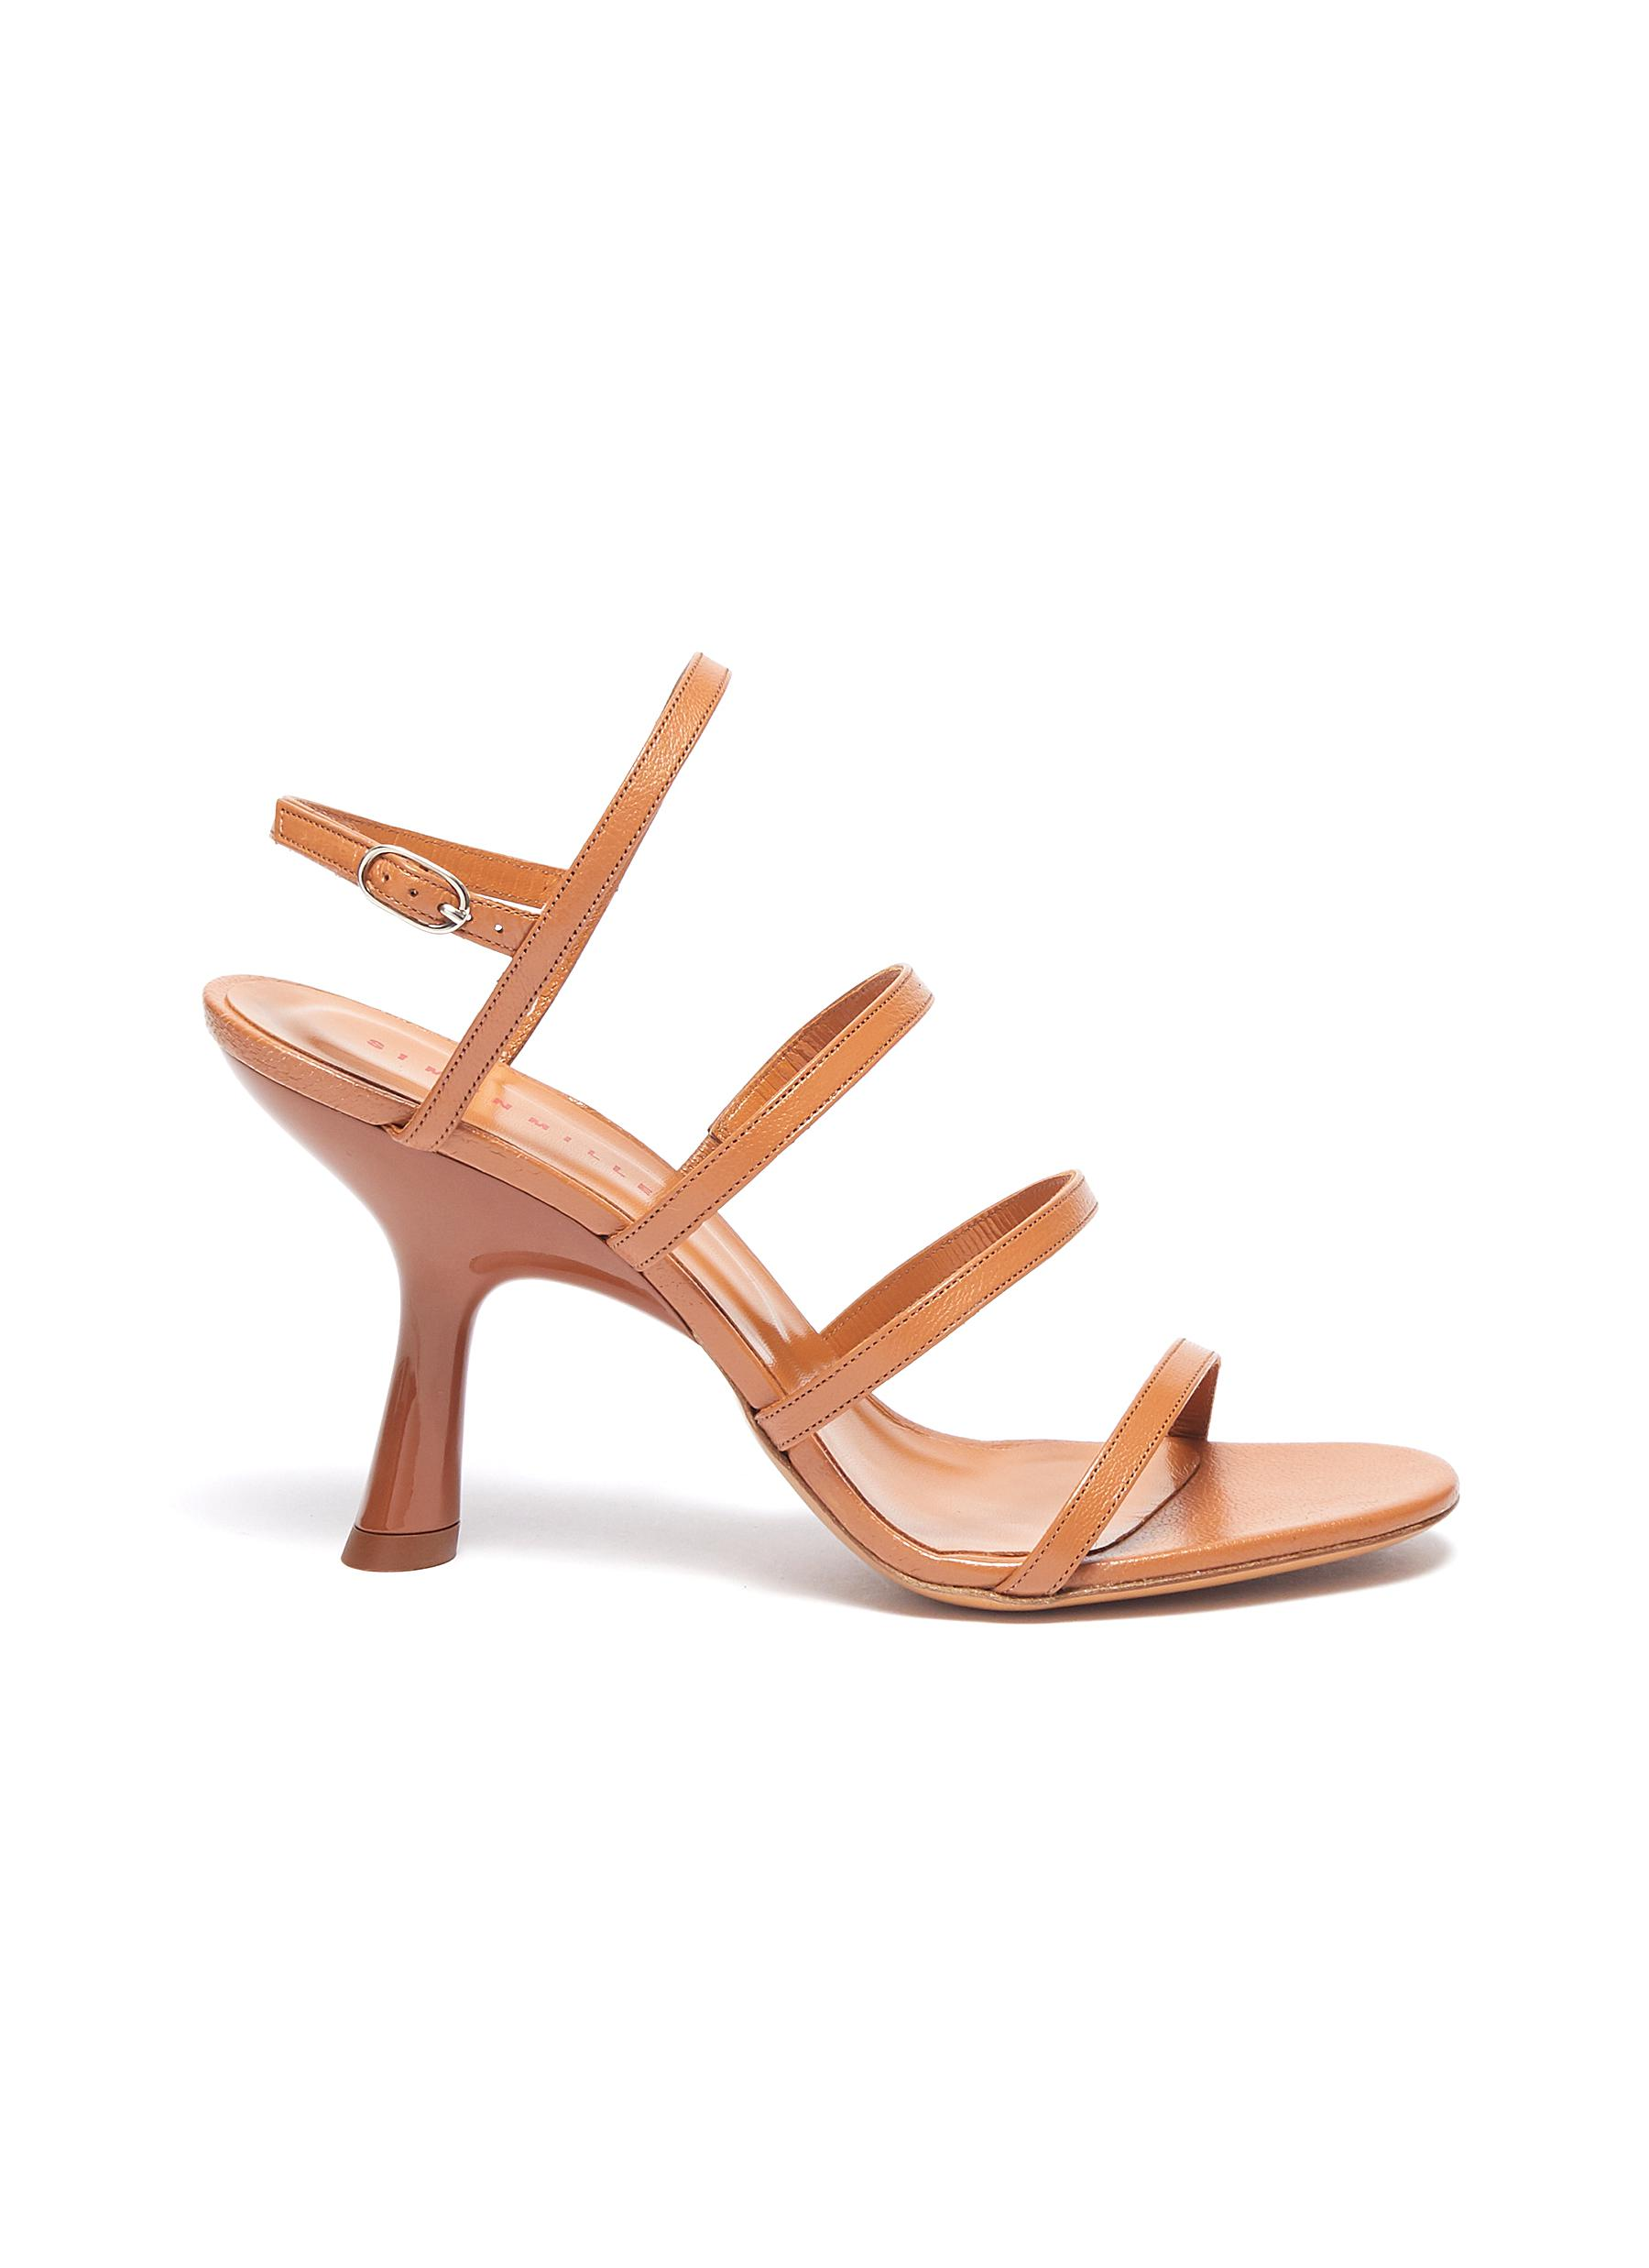 Strappy Tee 95 leather sandals by Simon Miller